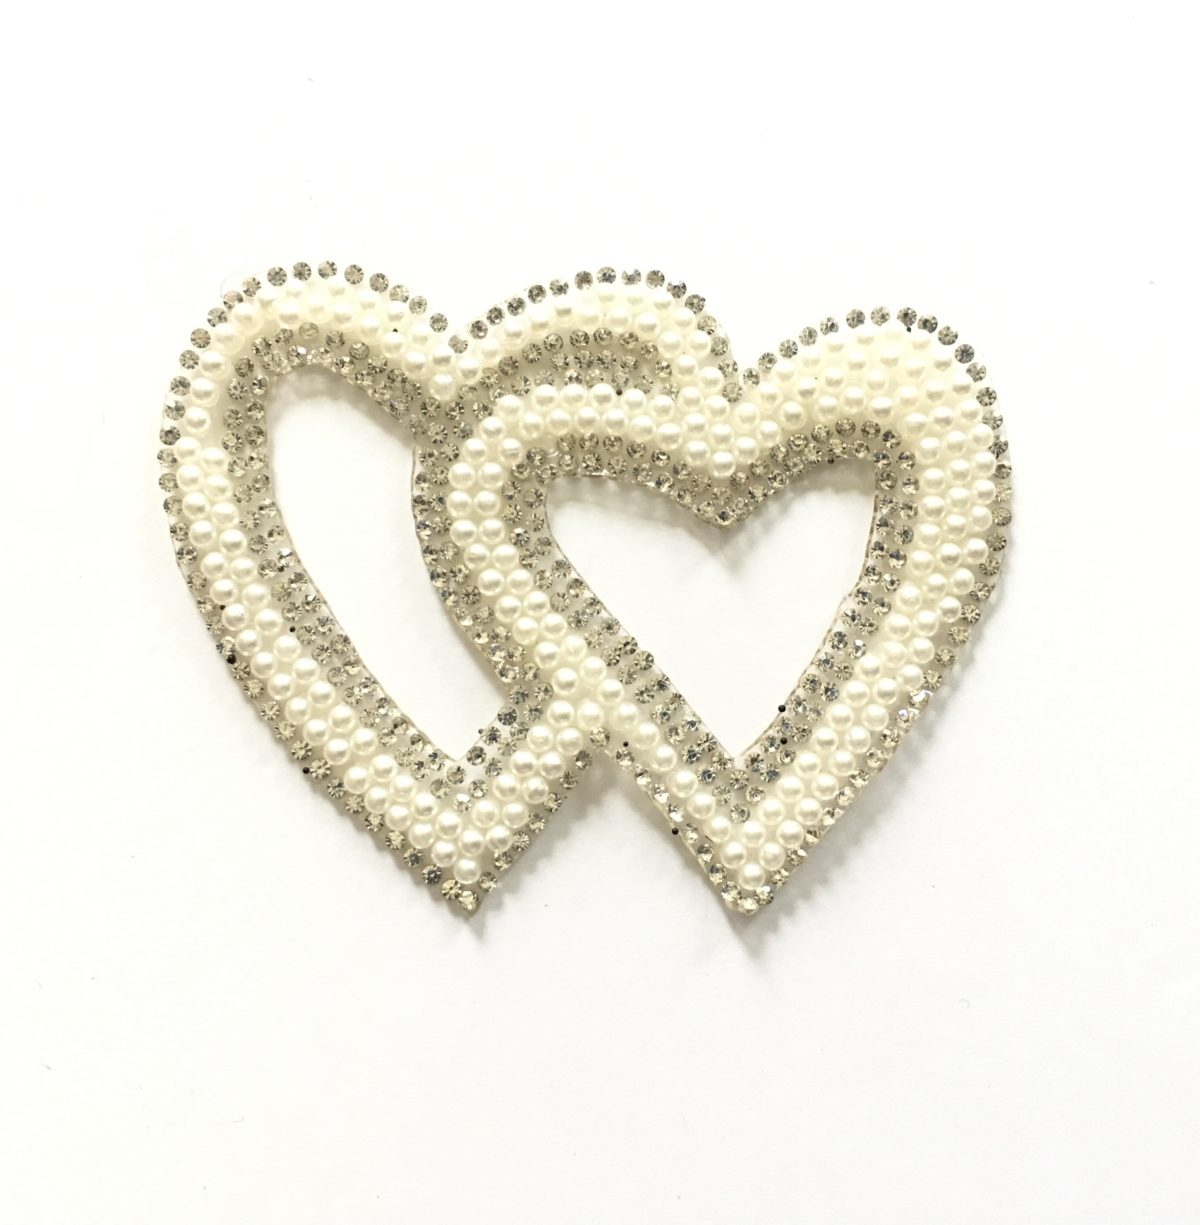 NEW Faux Pearl Rhinestone Heart Patch, Pearl Appliqué Iron On 1